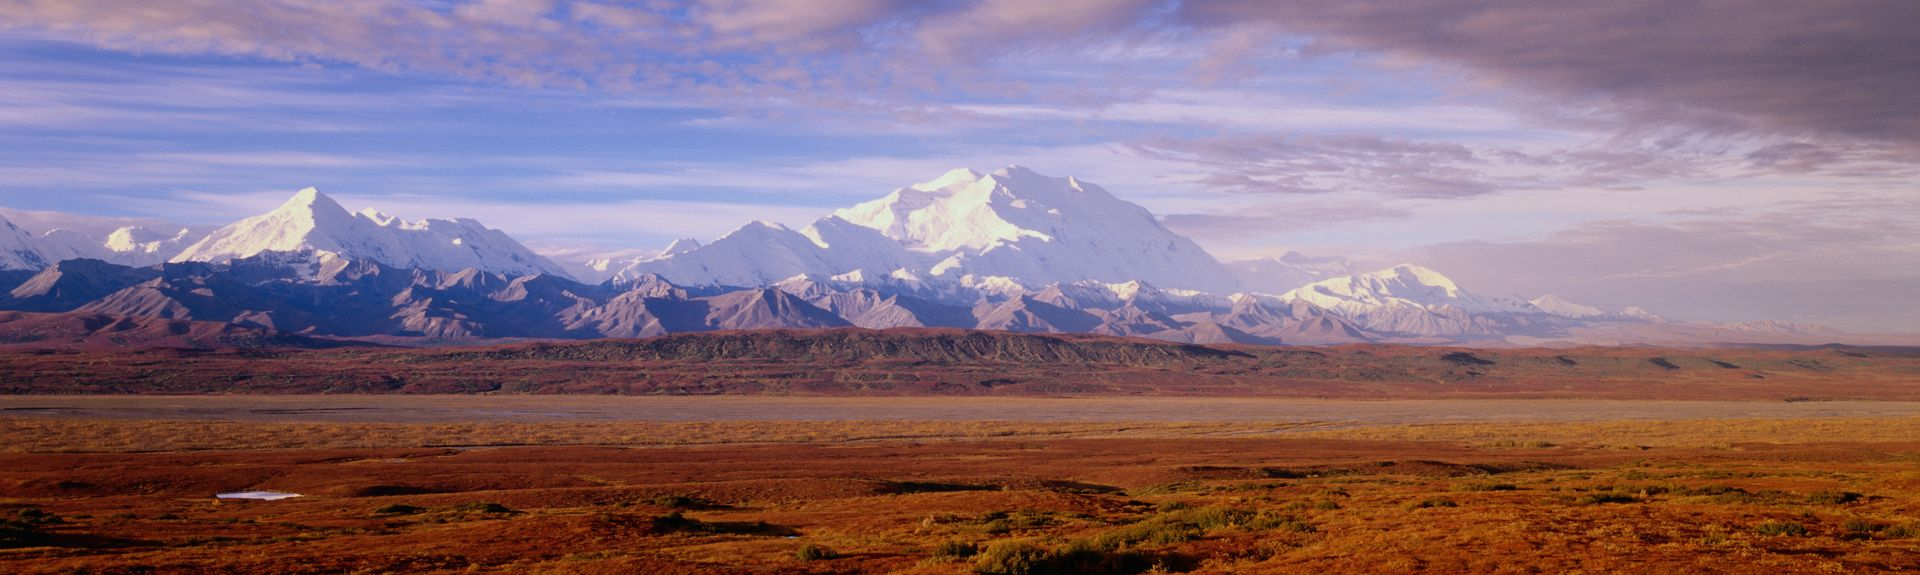 Denali Borough, Alaska, United States of America